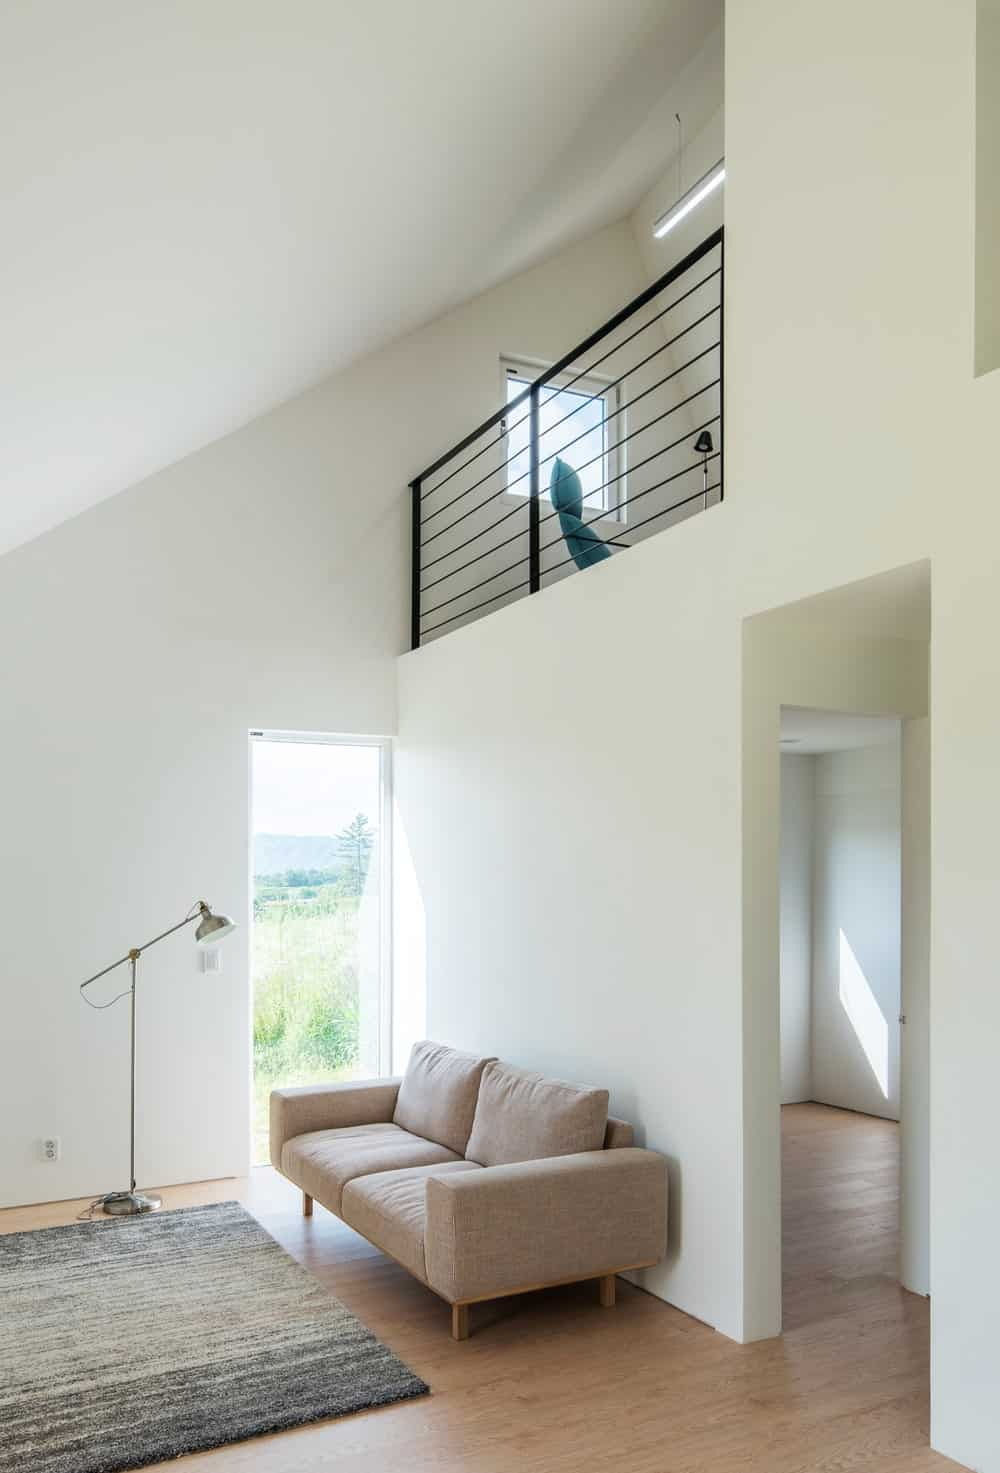 This look at the living room showcases the wrought iron railings that stand out against the bright walls.